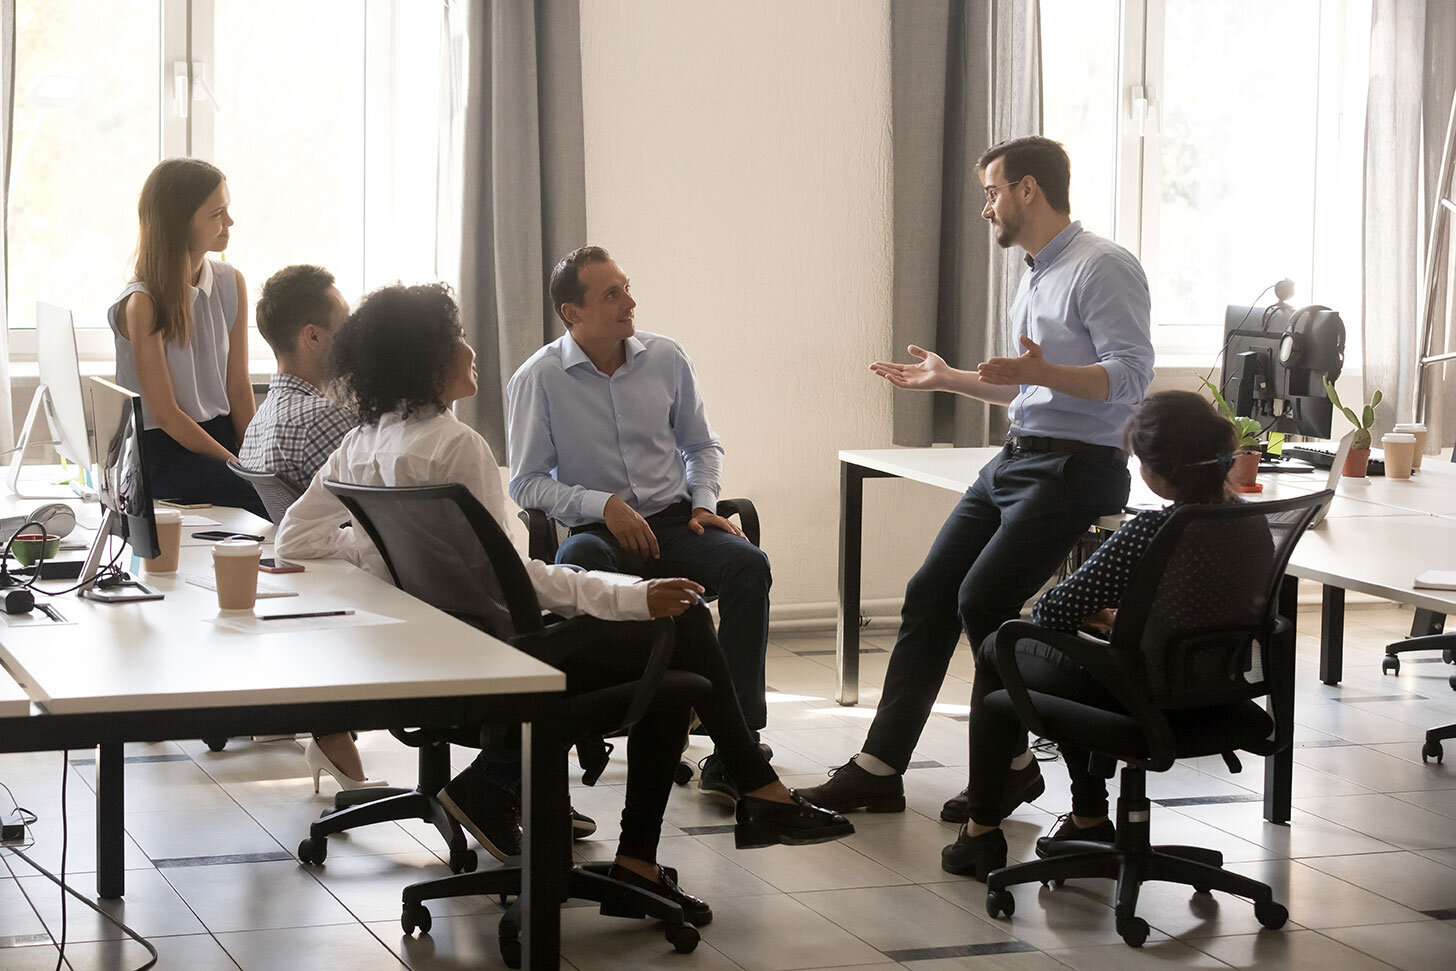 Build stronger teams by setting and achieving common goals. -